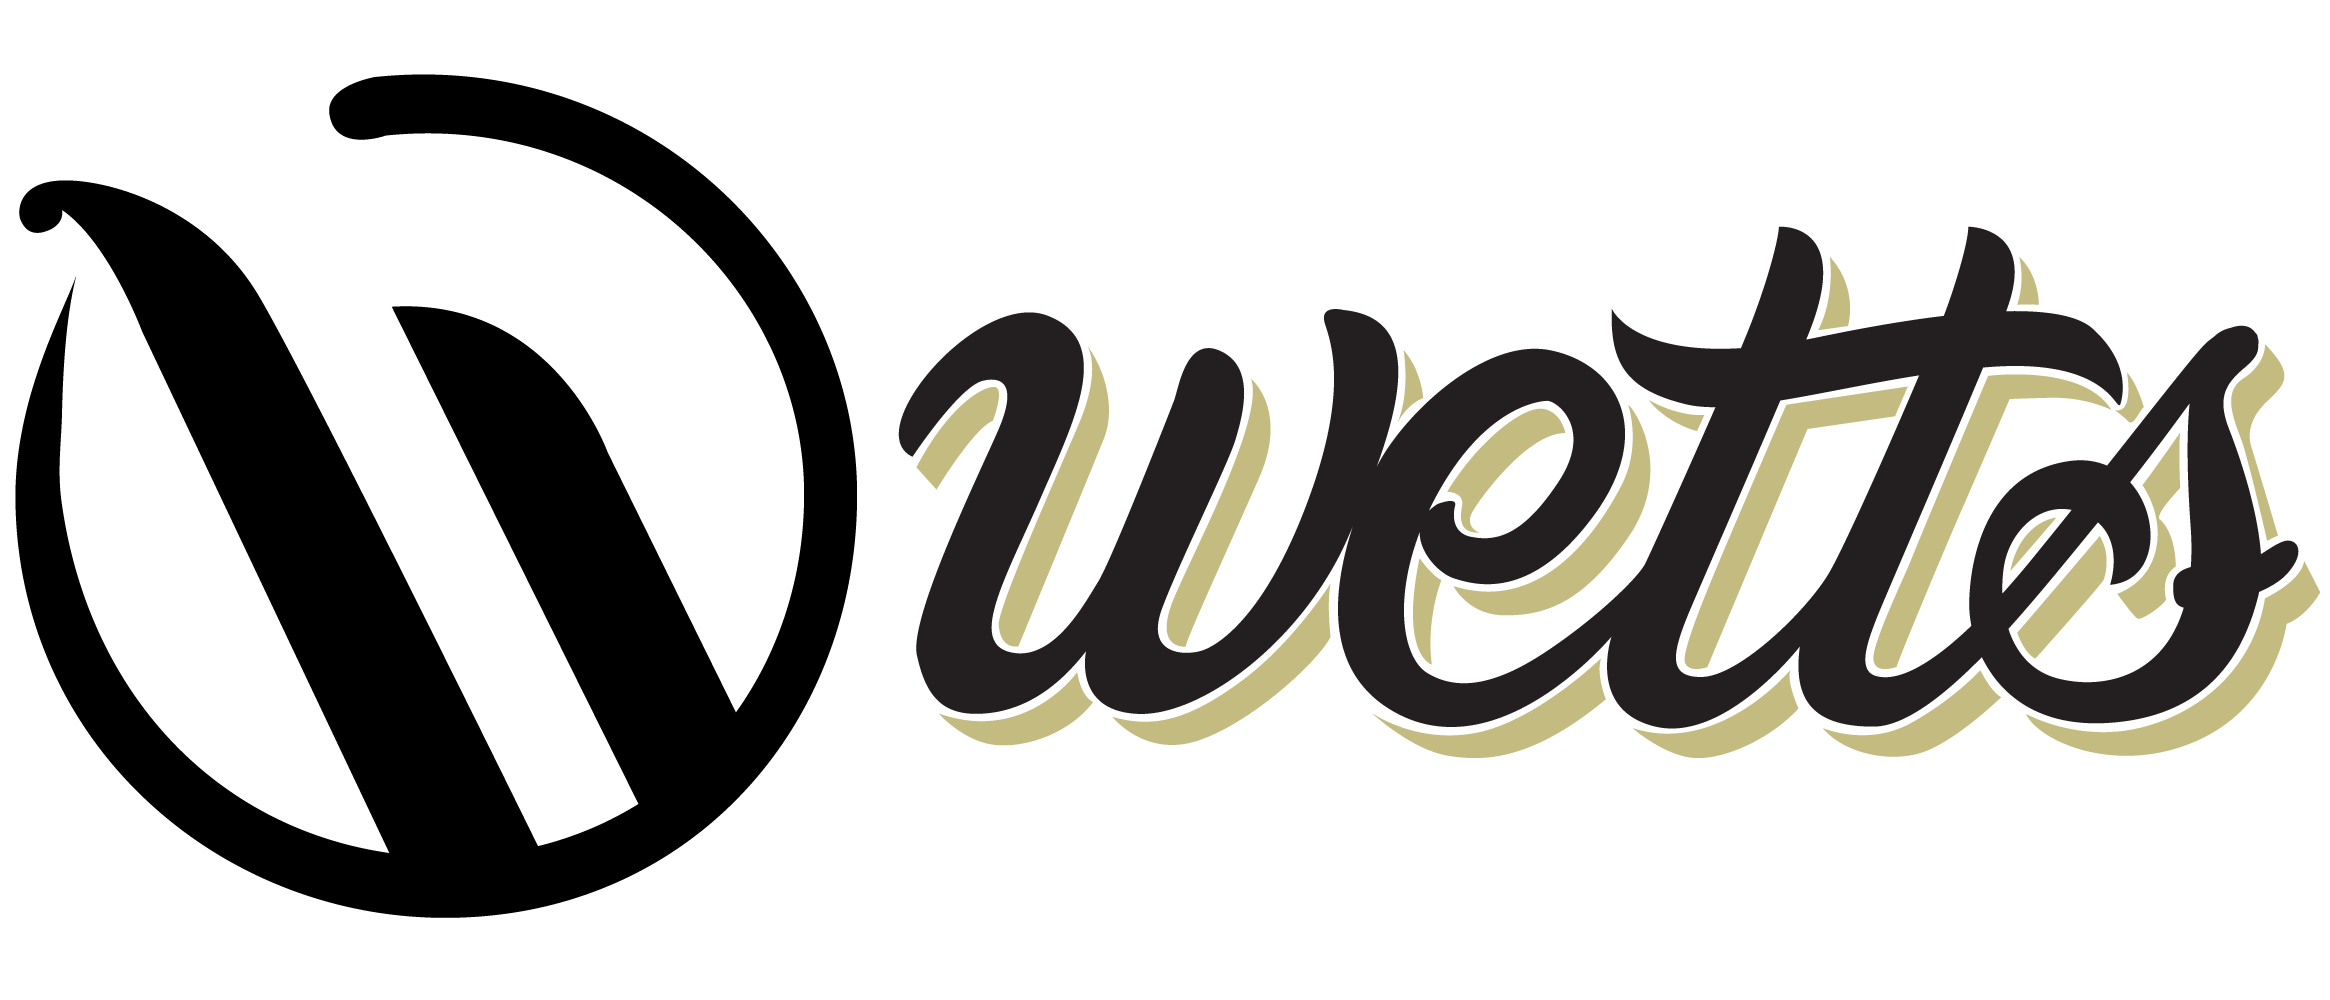 Wetts.co.uk